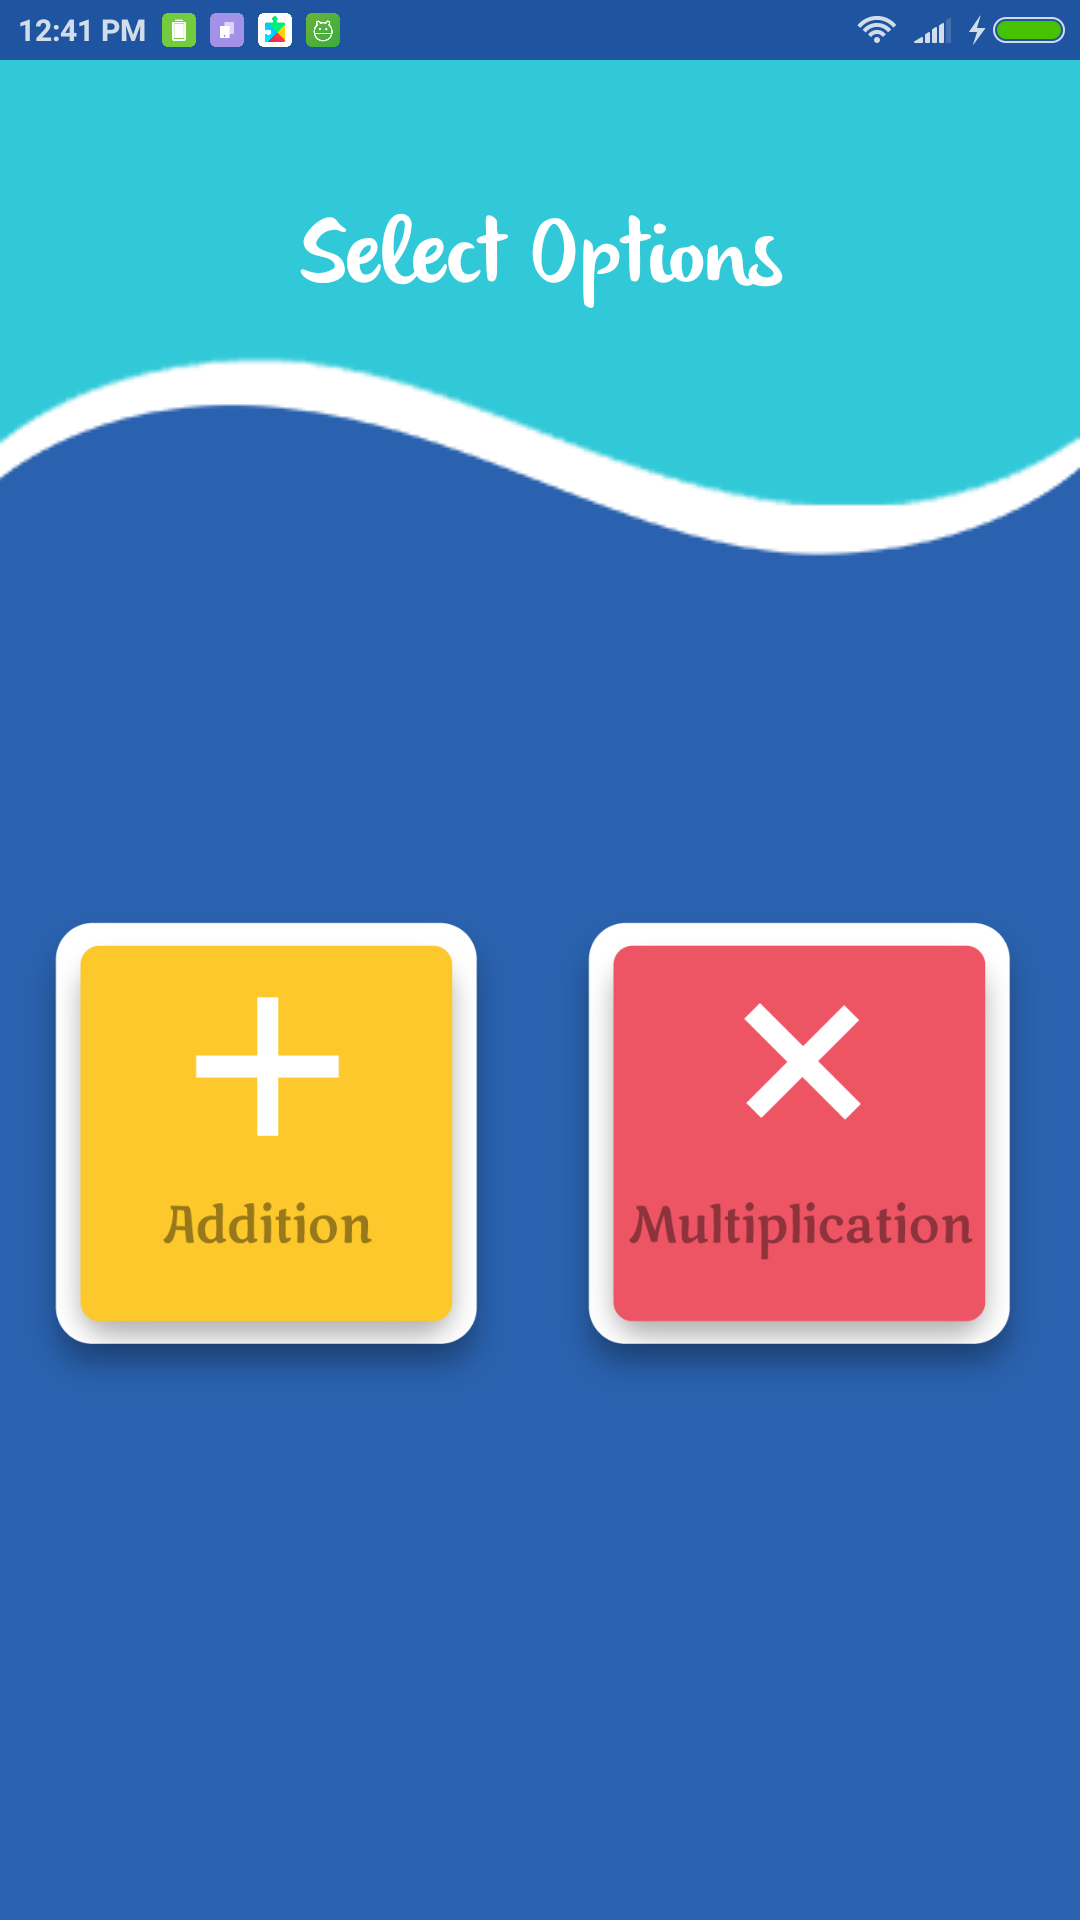 maths practice - app - select - addition -multiplication -learn -android - source code - free